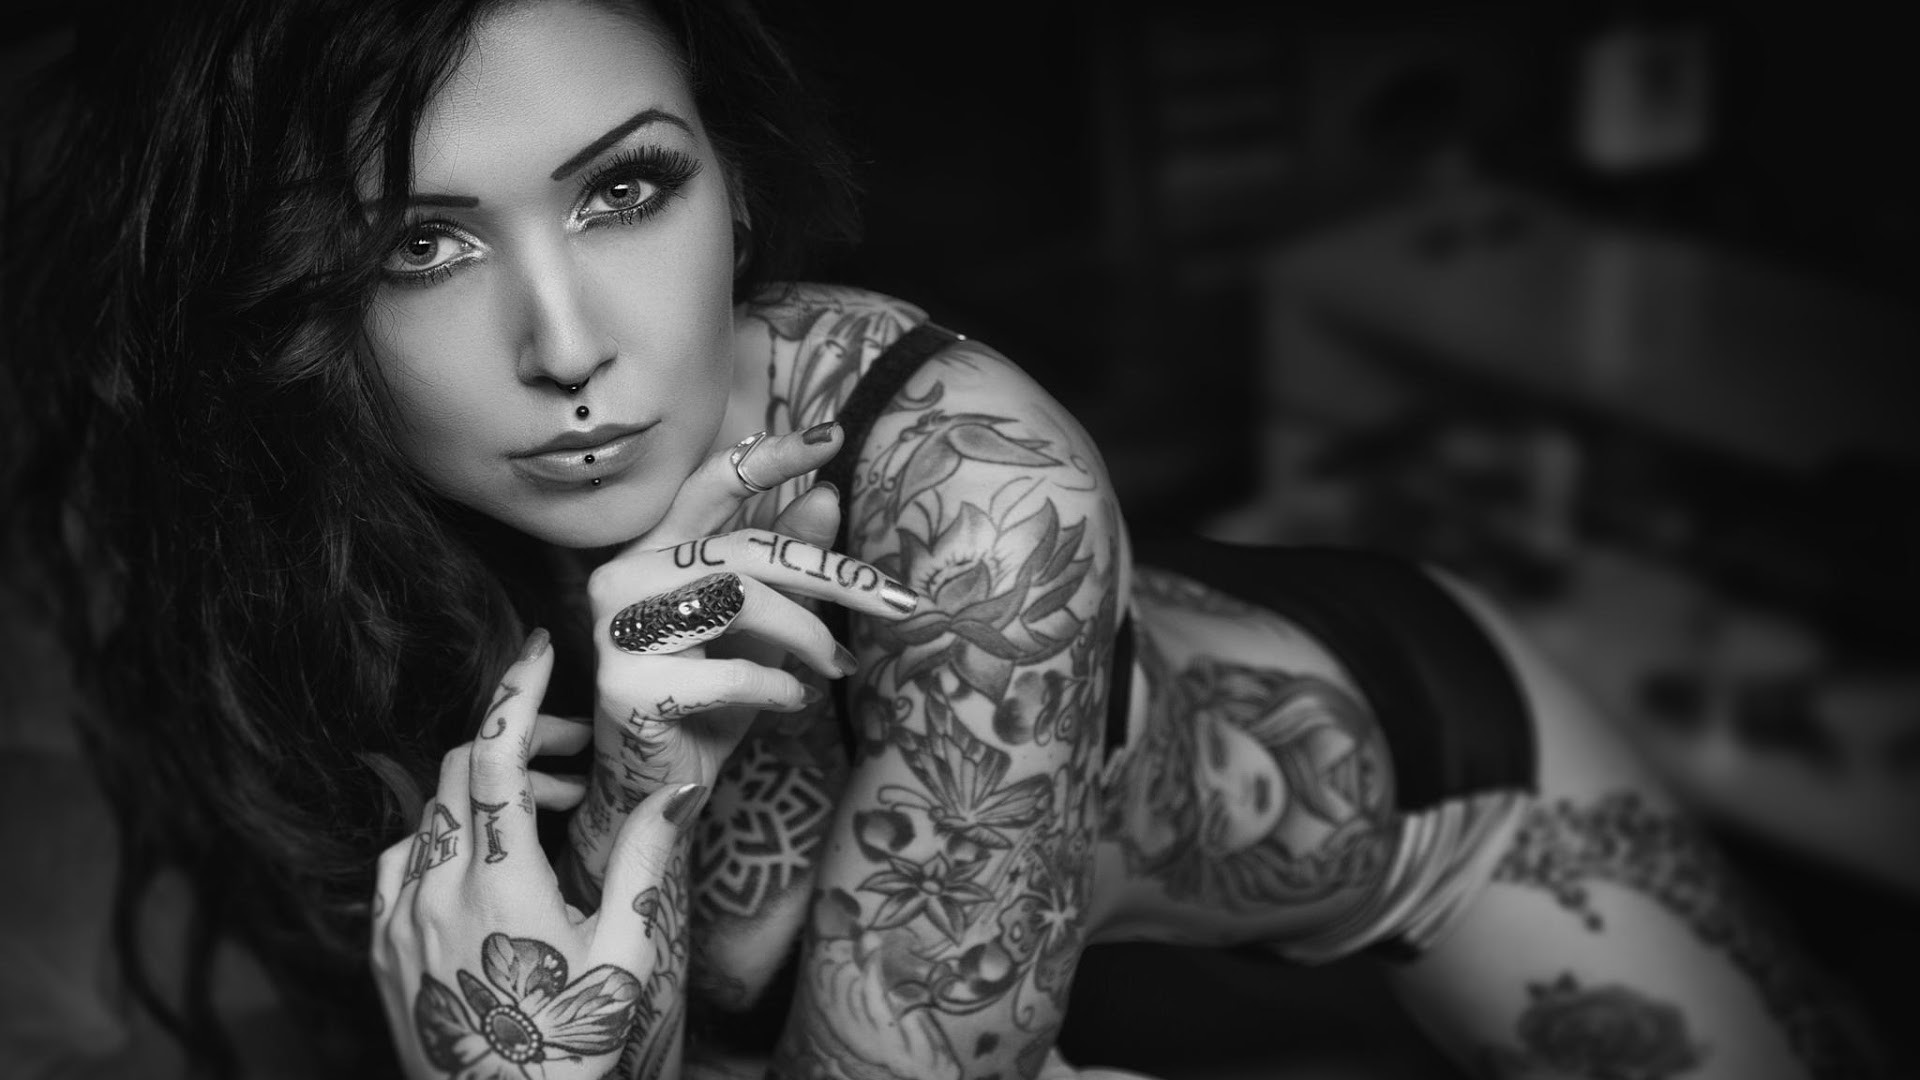 1920x1080 ... tattoos wallpapers wallpaperpulse; 1080p hd wallpapers ...